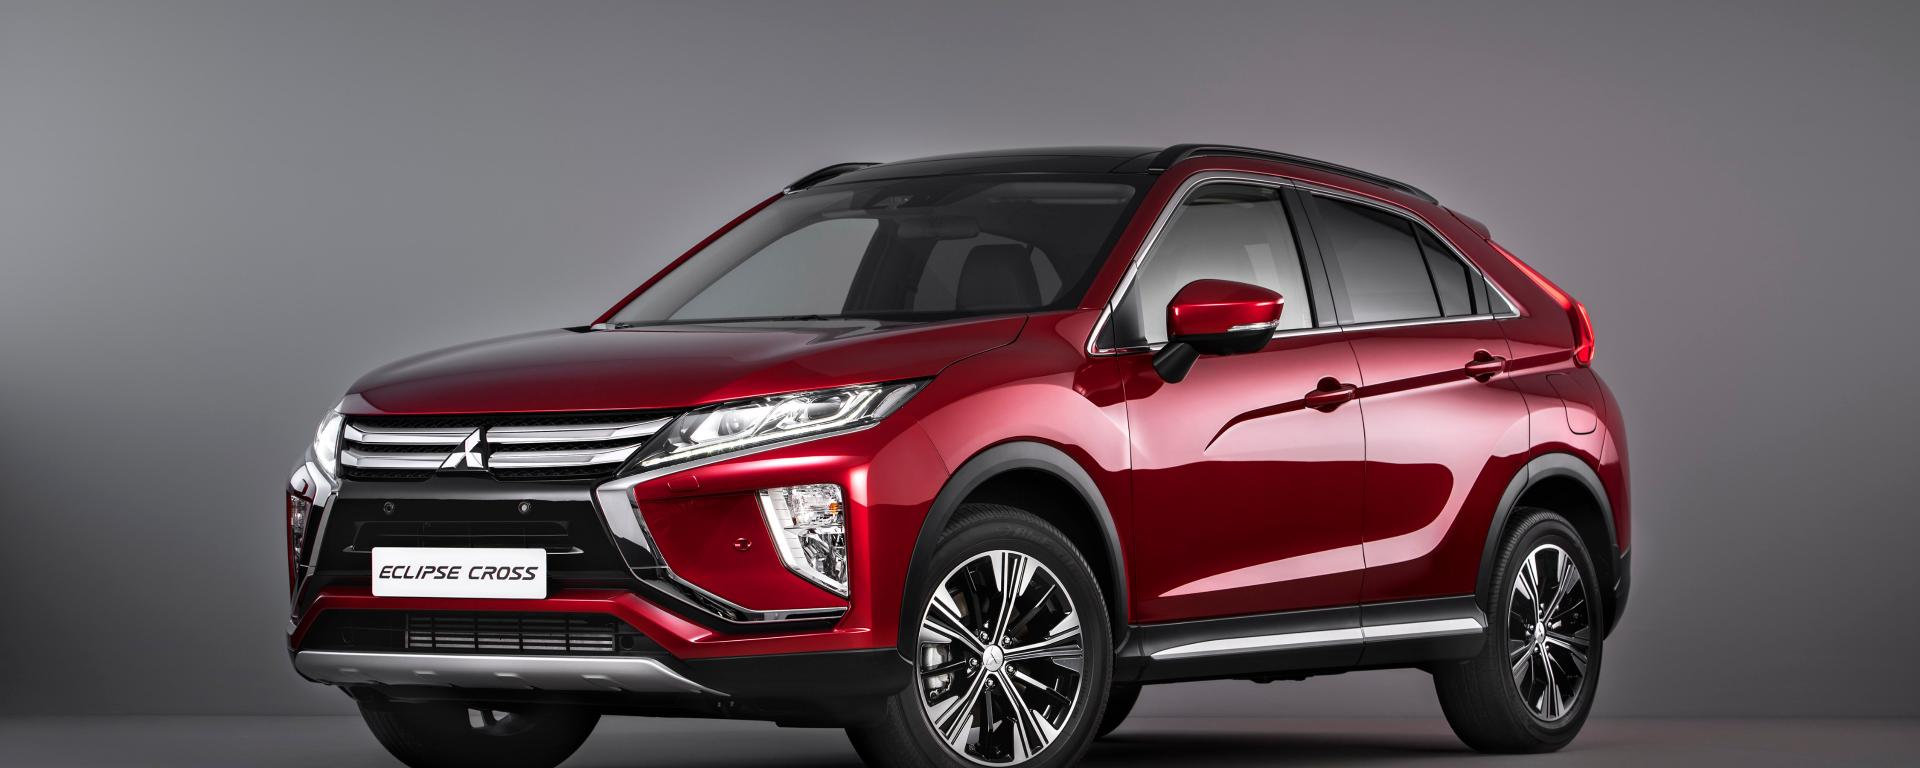 Mitsubishi Eclipse Cross leasen